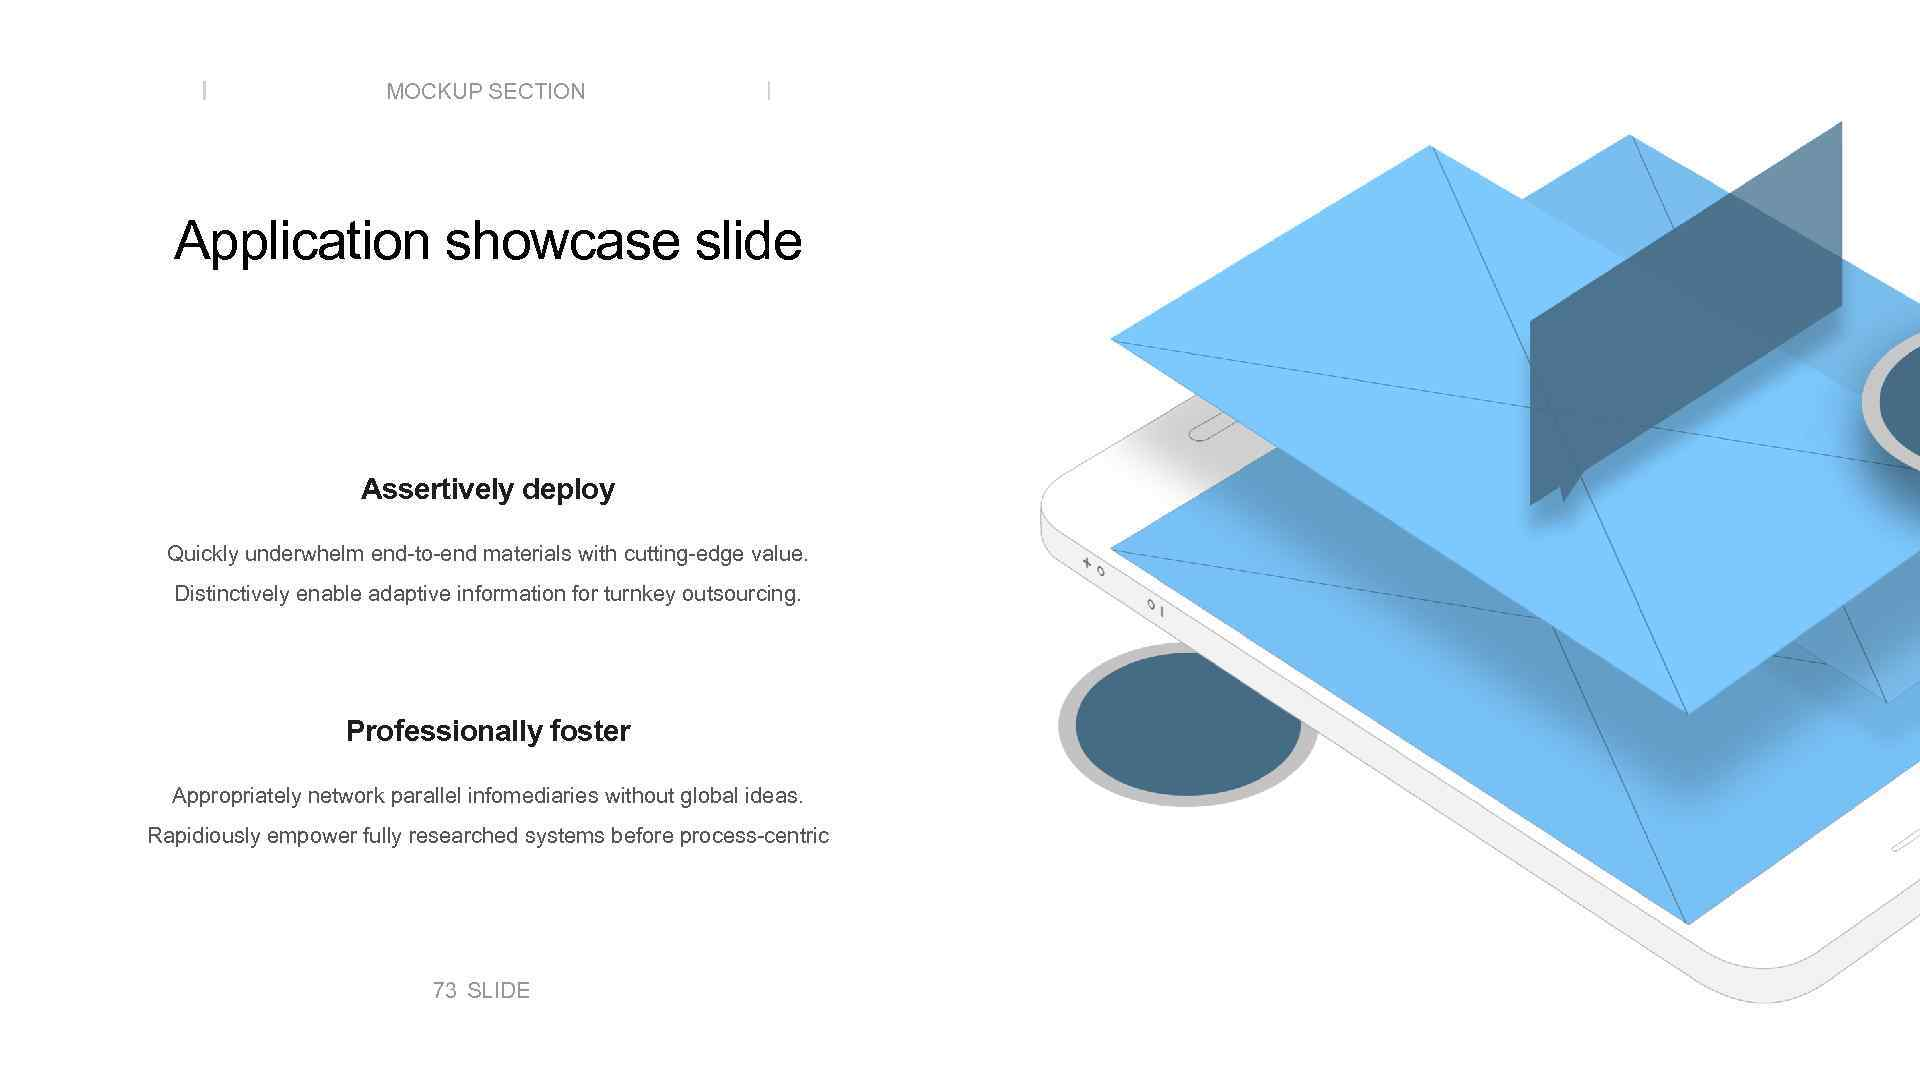 MOCKUP SECTION Application showcase slide Assertively deploy Quickly underwhelm end-to-end materials with cutting-edge value.